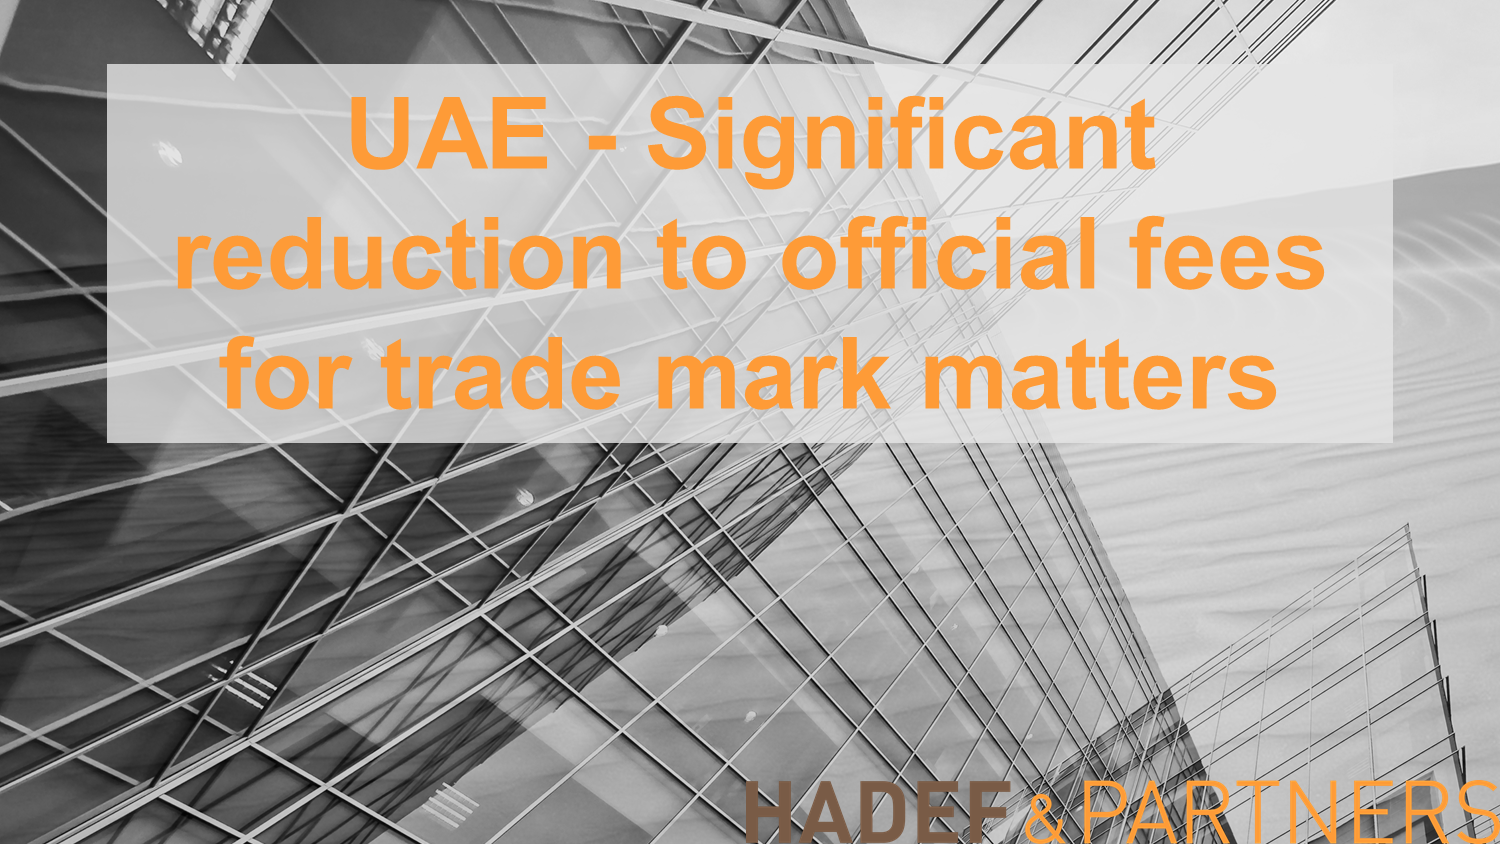 UAE - Significant reduction to official fees for trade mark matters